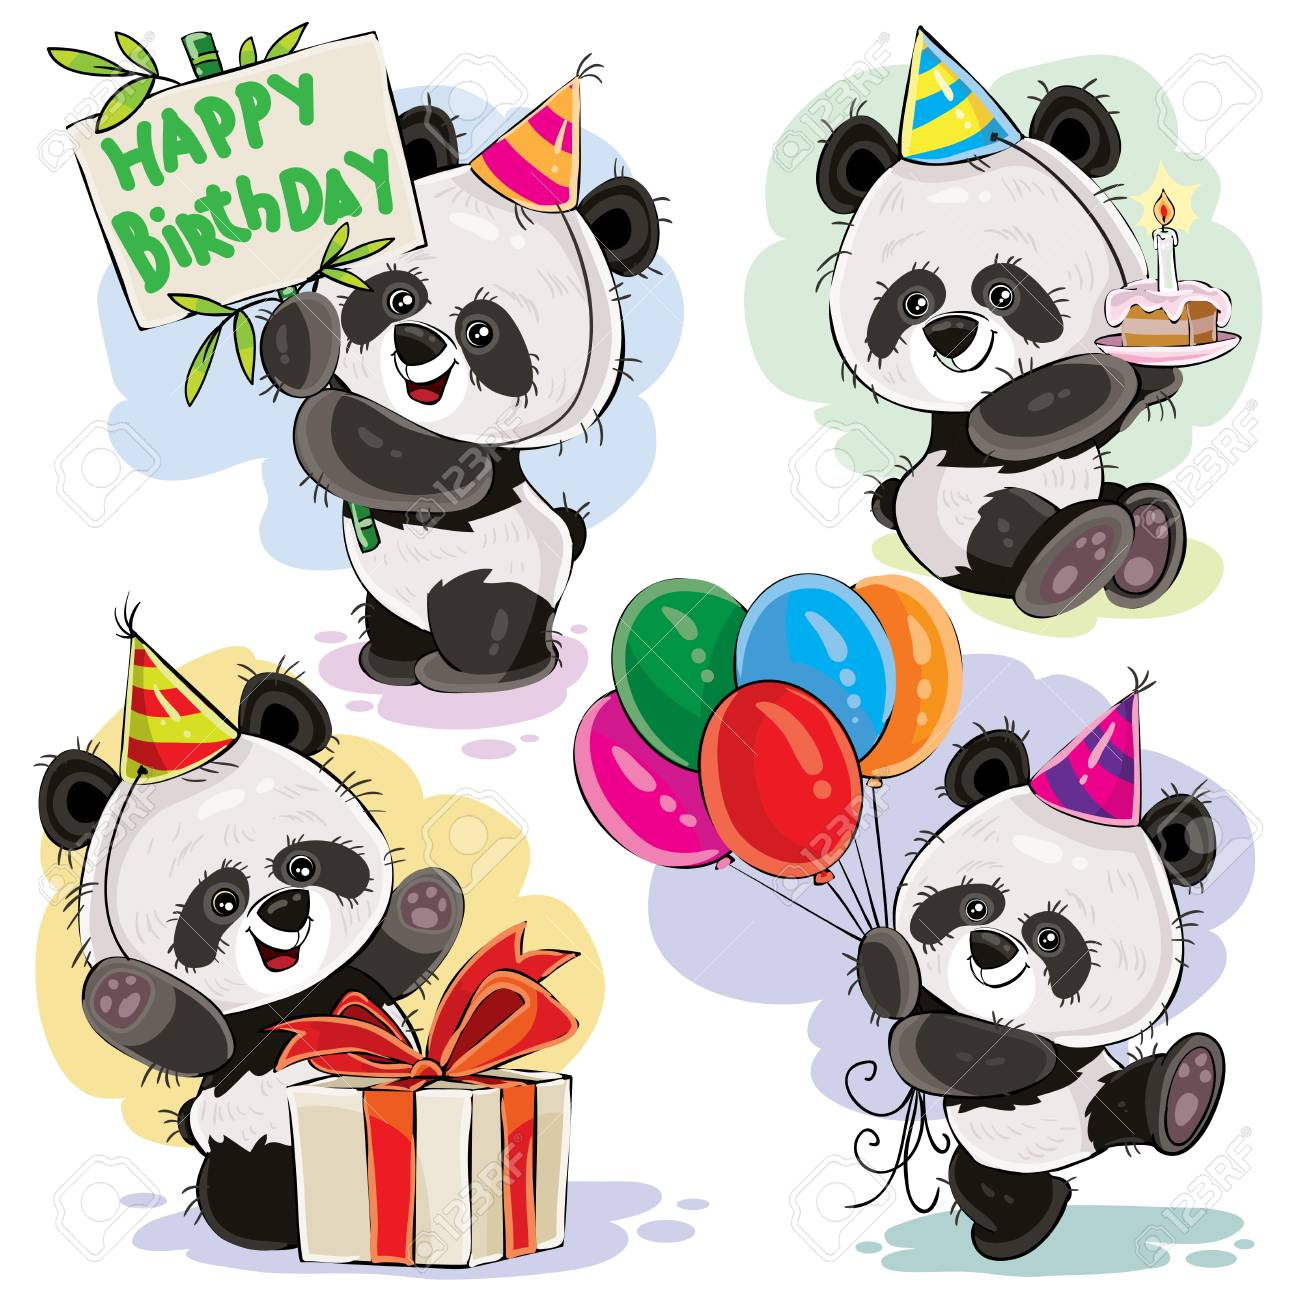 Cute panda bears baby cartoon characters celebrating birthday with cake, balloons and present in box vector illustration set isolated on white background for greeting card, birthday party invitation - 87472334